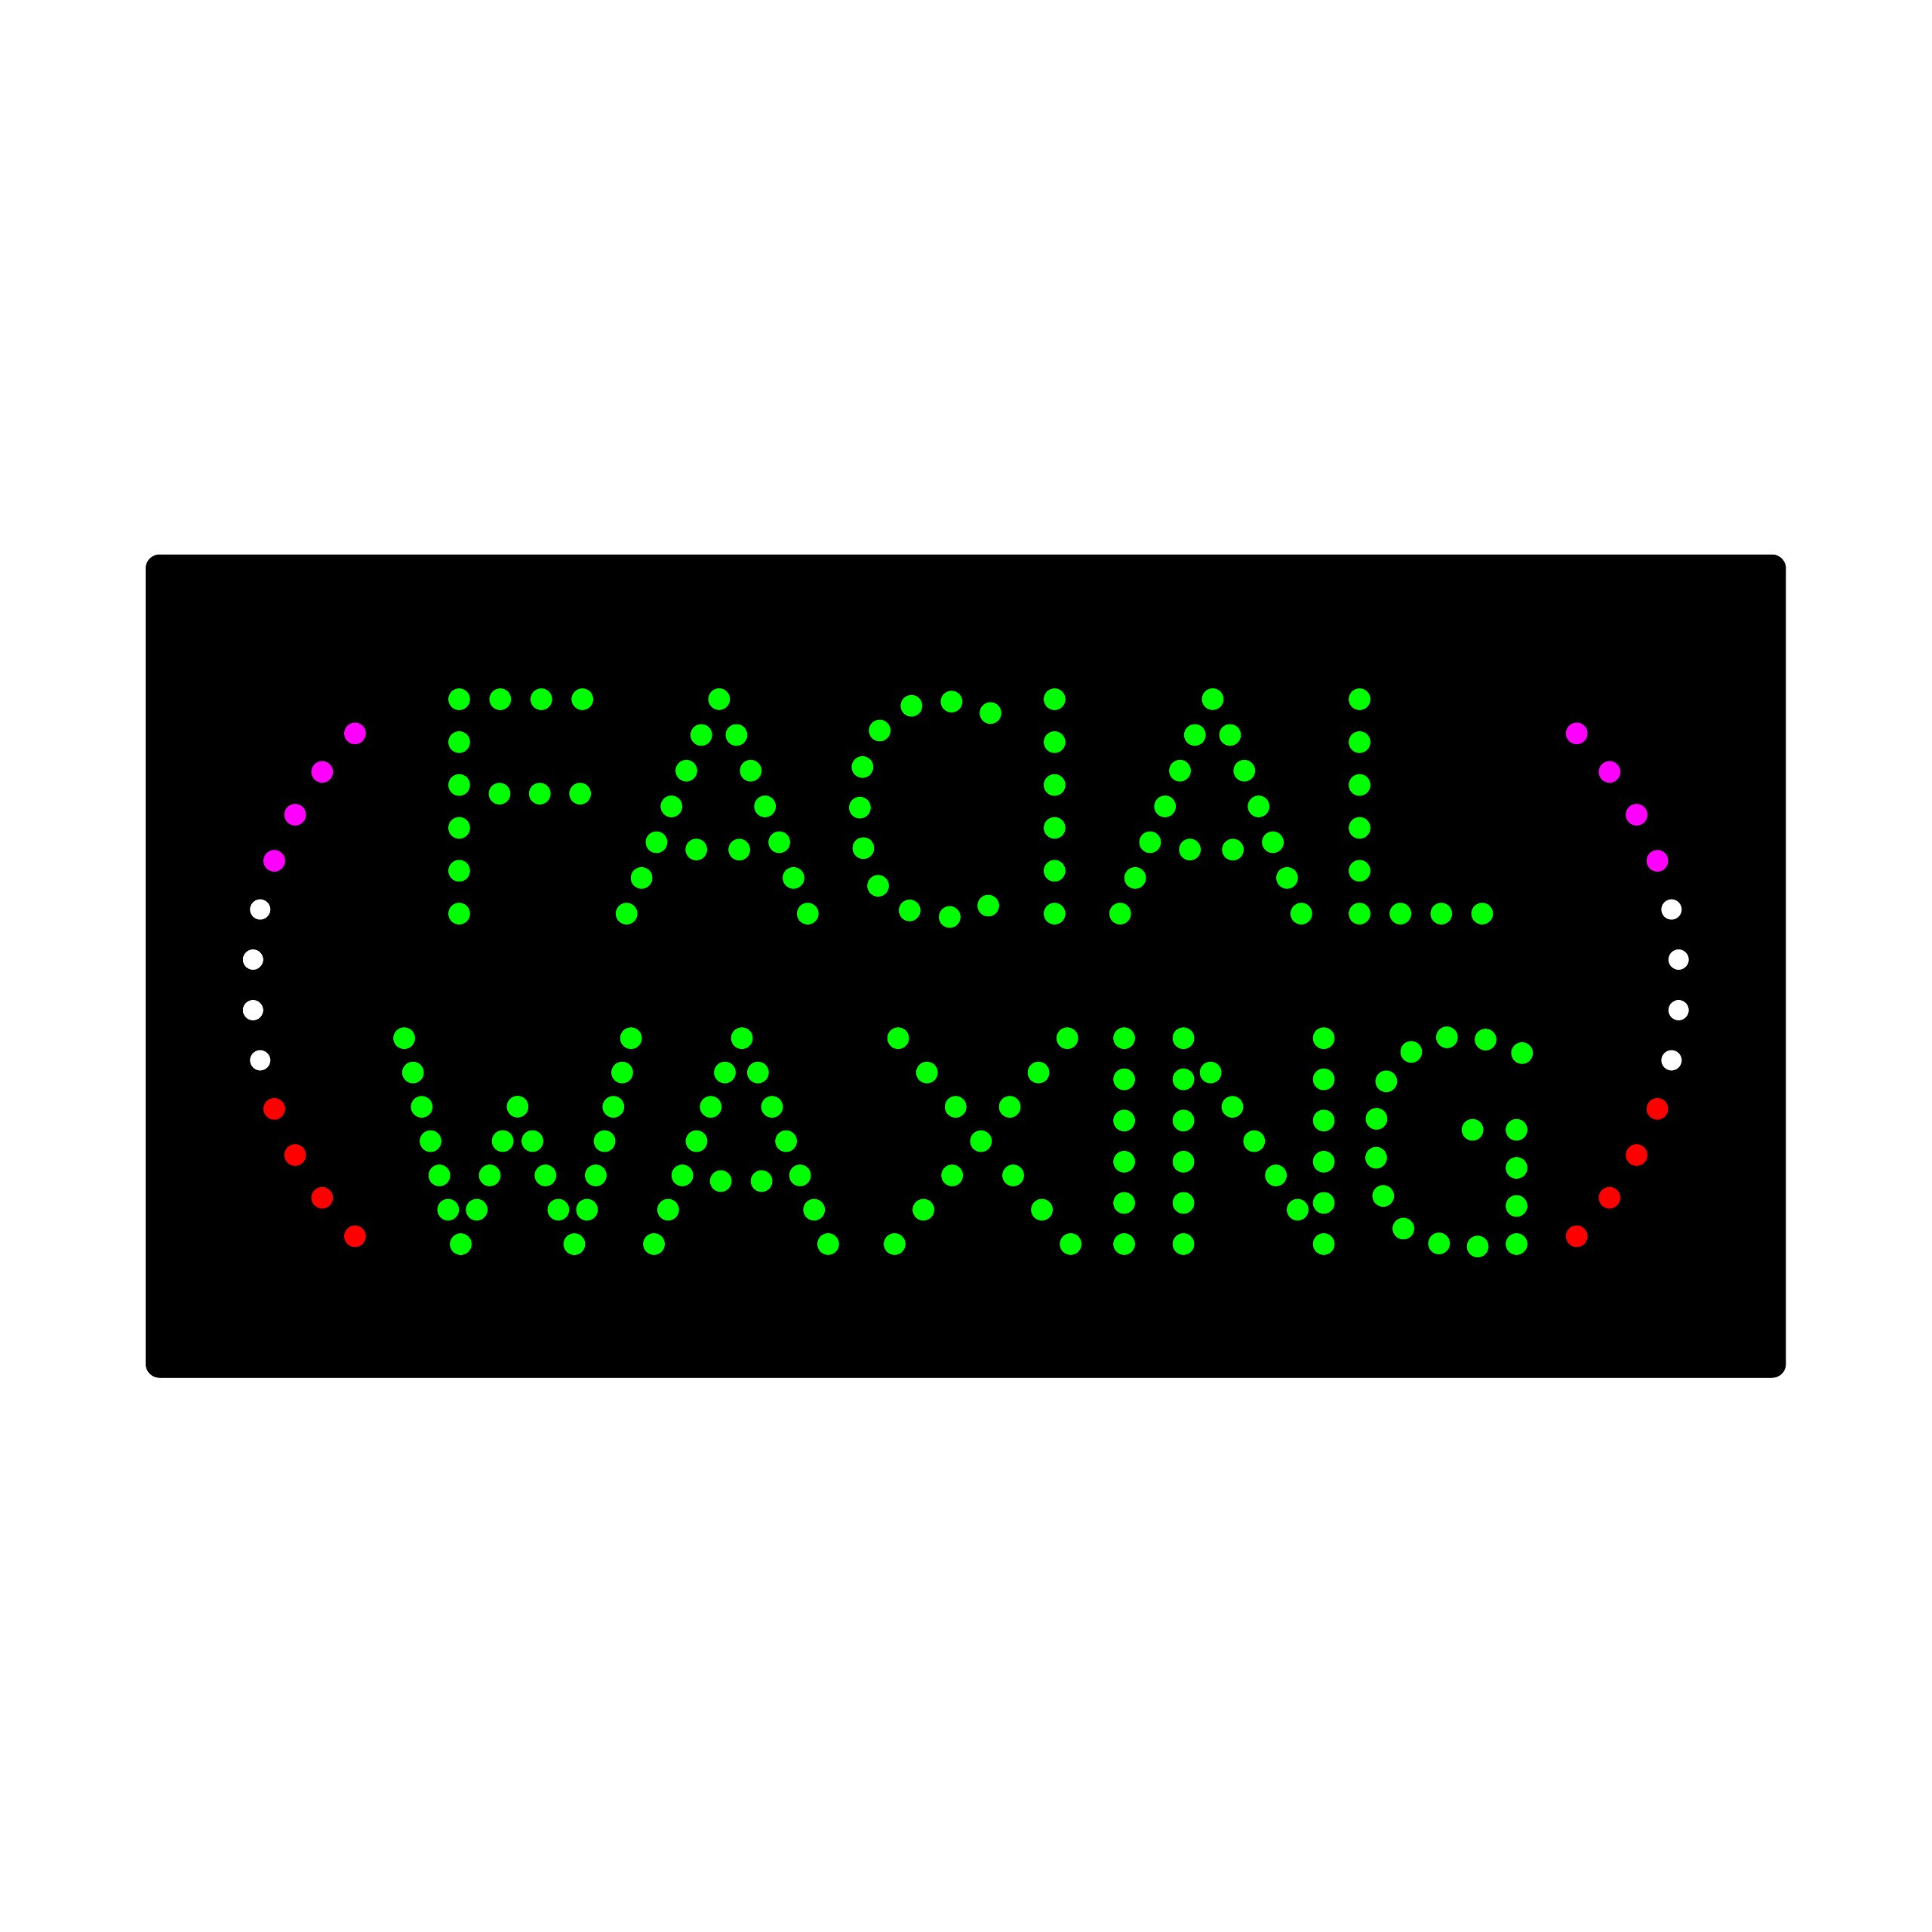 LED Facial Waxing Light Sign Super Bright Electric Advertising Display Board for Nails Spa Pedicure Message Business Shop Store Window Bedroom 24 x 12 inches